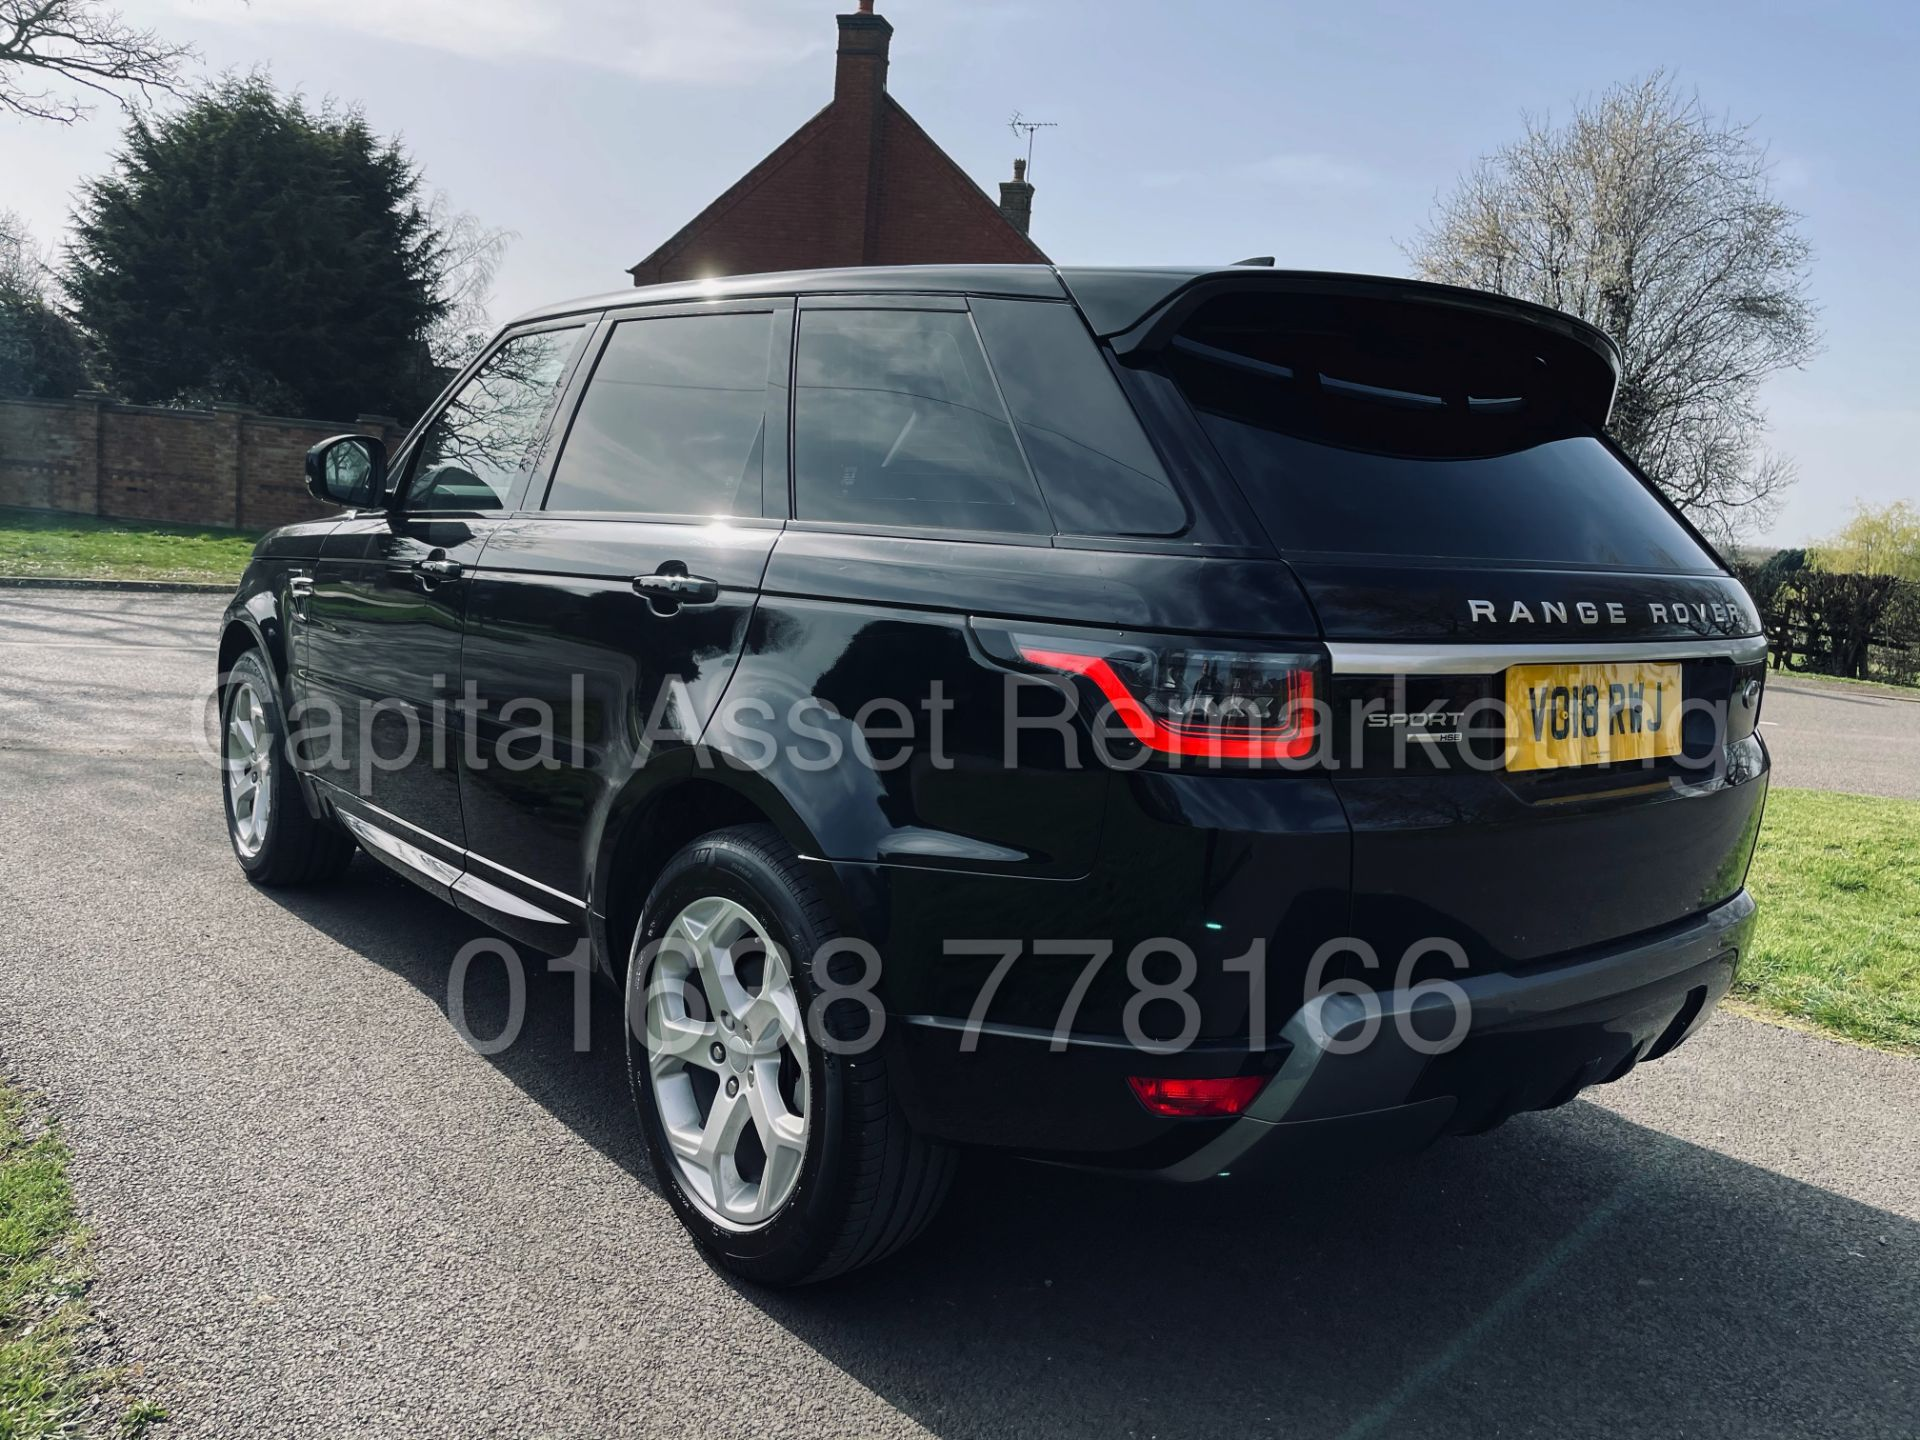 (On Sale) RANGE ROVER SPORT *HSE EDITION* SUV (2018 - NEW MODEL) '8 SPEED AUTO' *FULLY LOADED* - Image 10 of 55